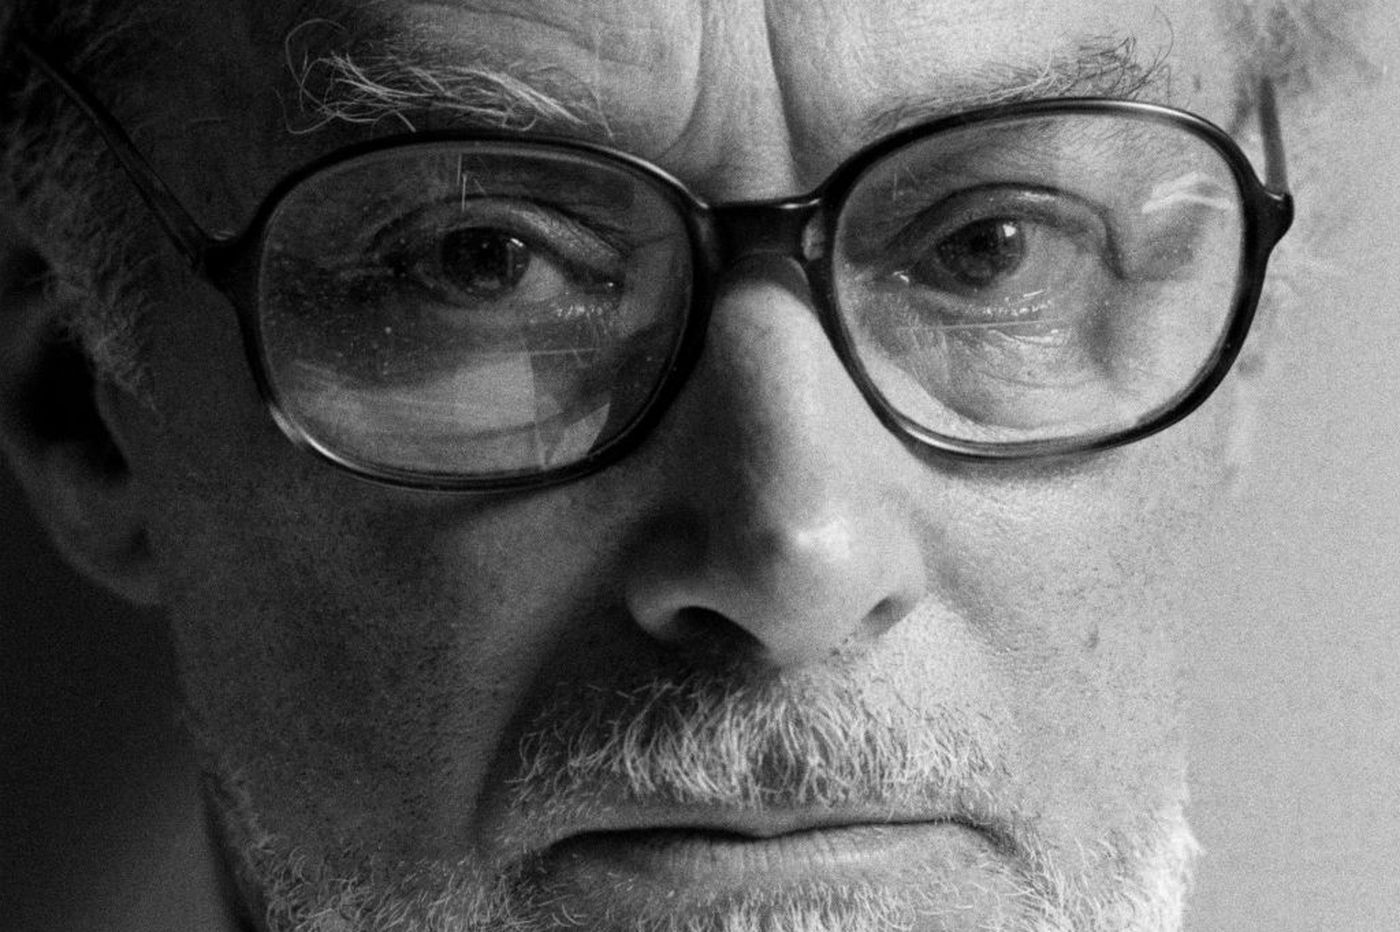 'Collected Works' makes case for Primo Levi's singular art